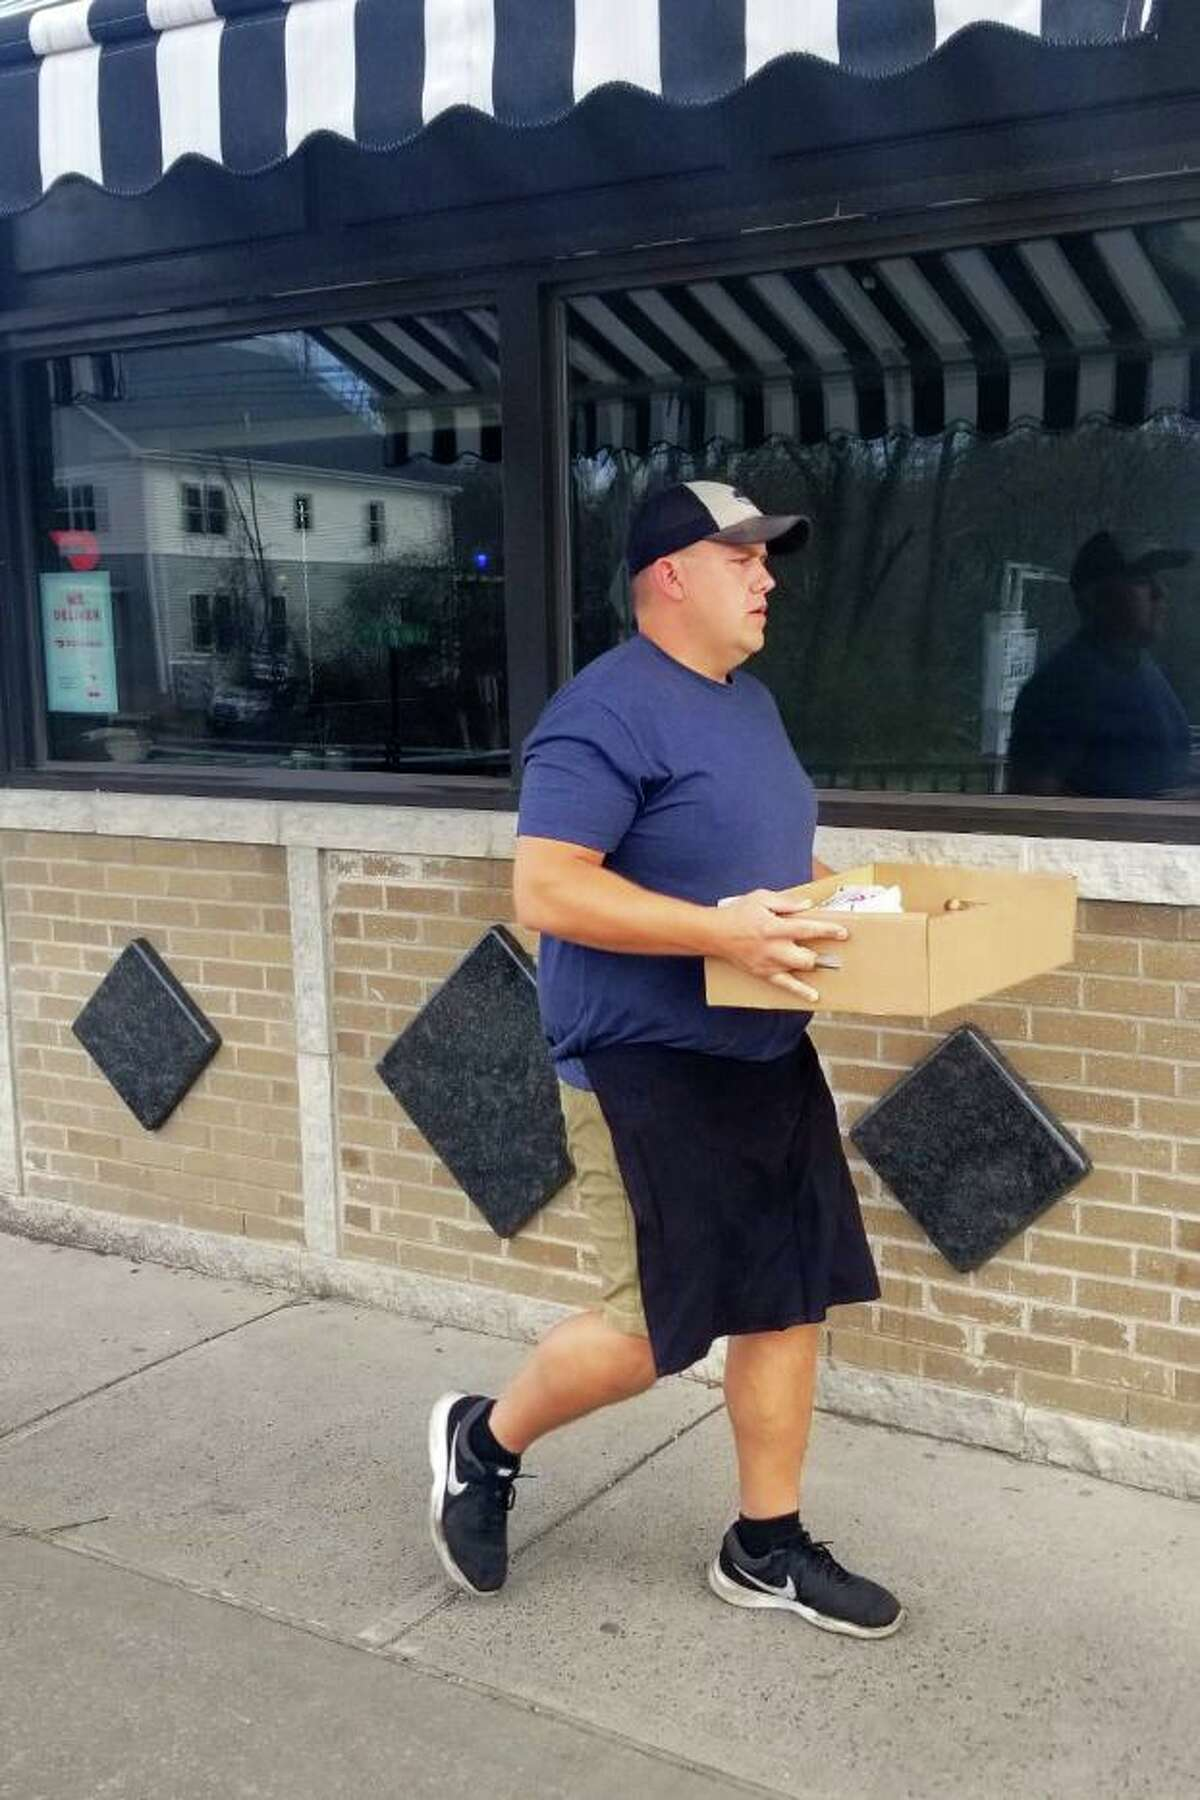 An employee of Illiano's Ristorante and Pizzeria in Middletown leaves the eatery with food for health care workers. Owner Vincent Scileppi is matching every $10 donation from the public to fund the effort. The first week, $700 came in, enough to fund $1,400 worth of pies.